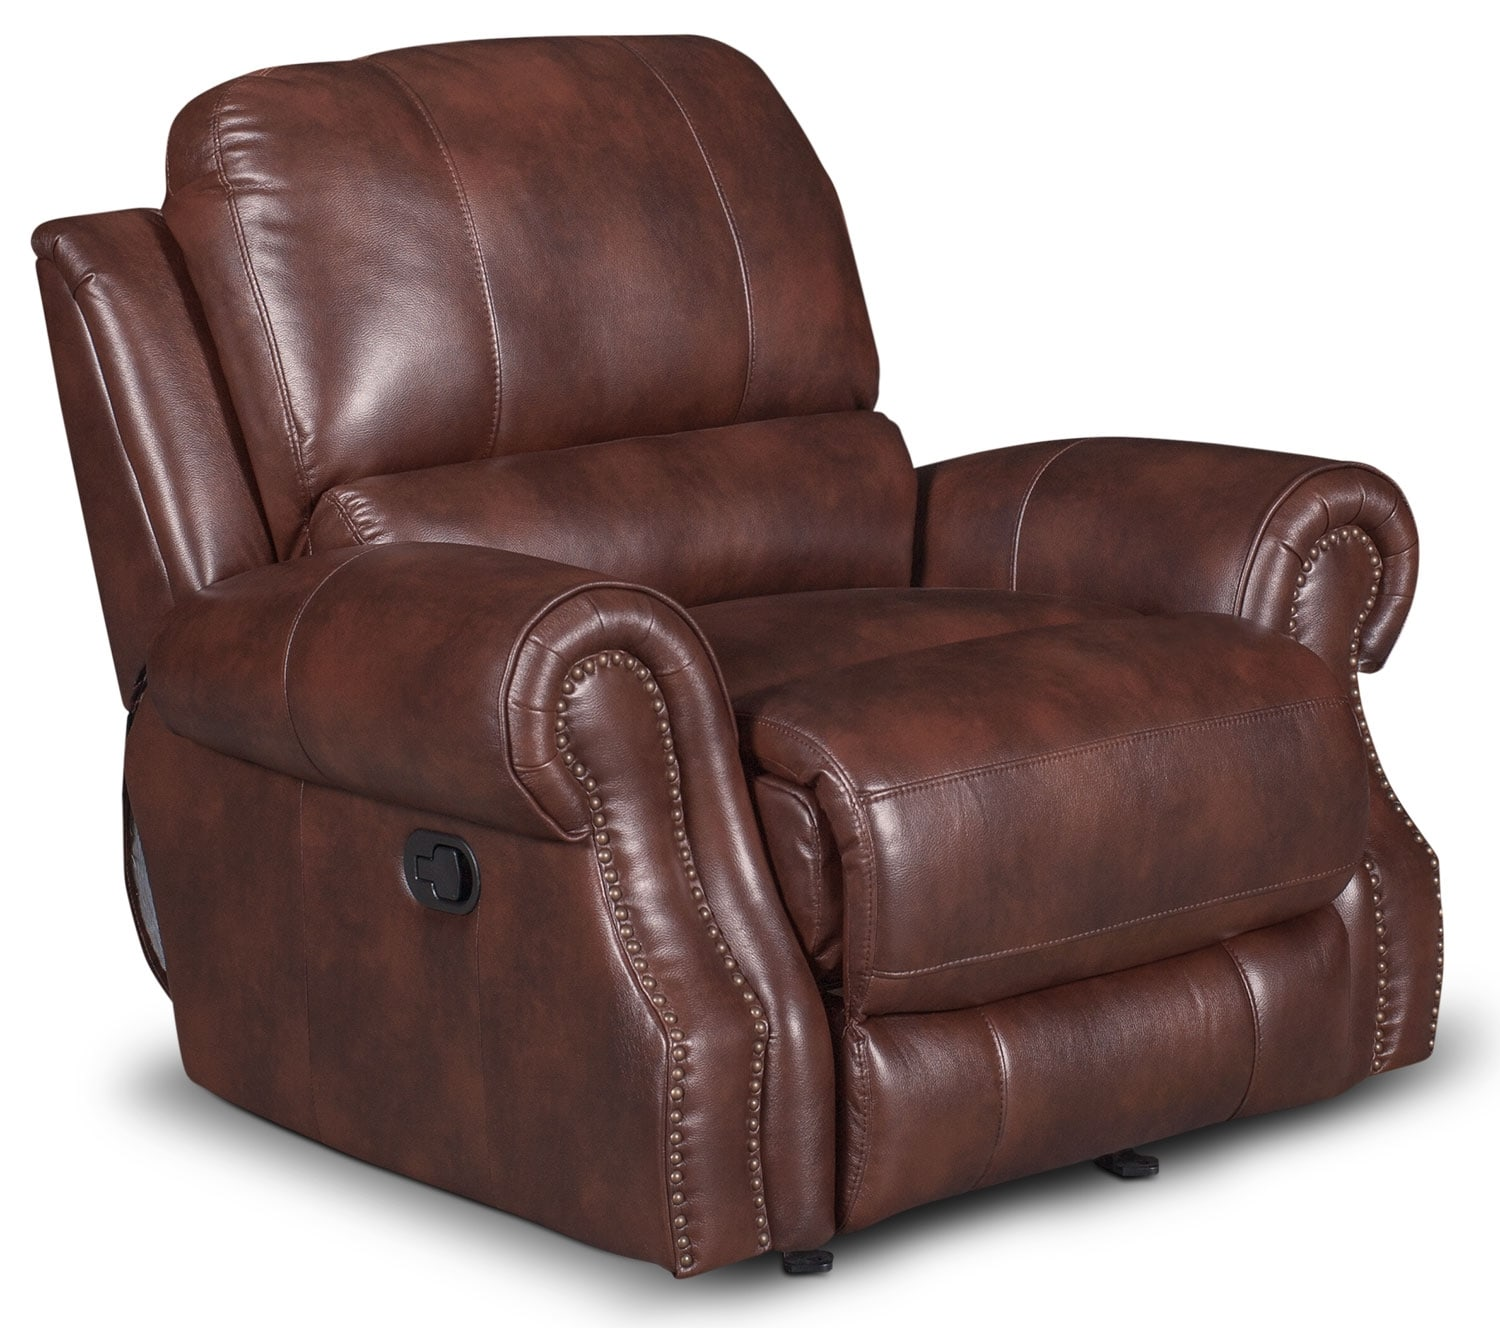 Living Room Furniture - Magnum Leather-Look Fabric Power Reclining Chair – Brown